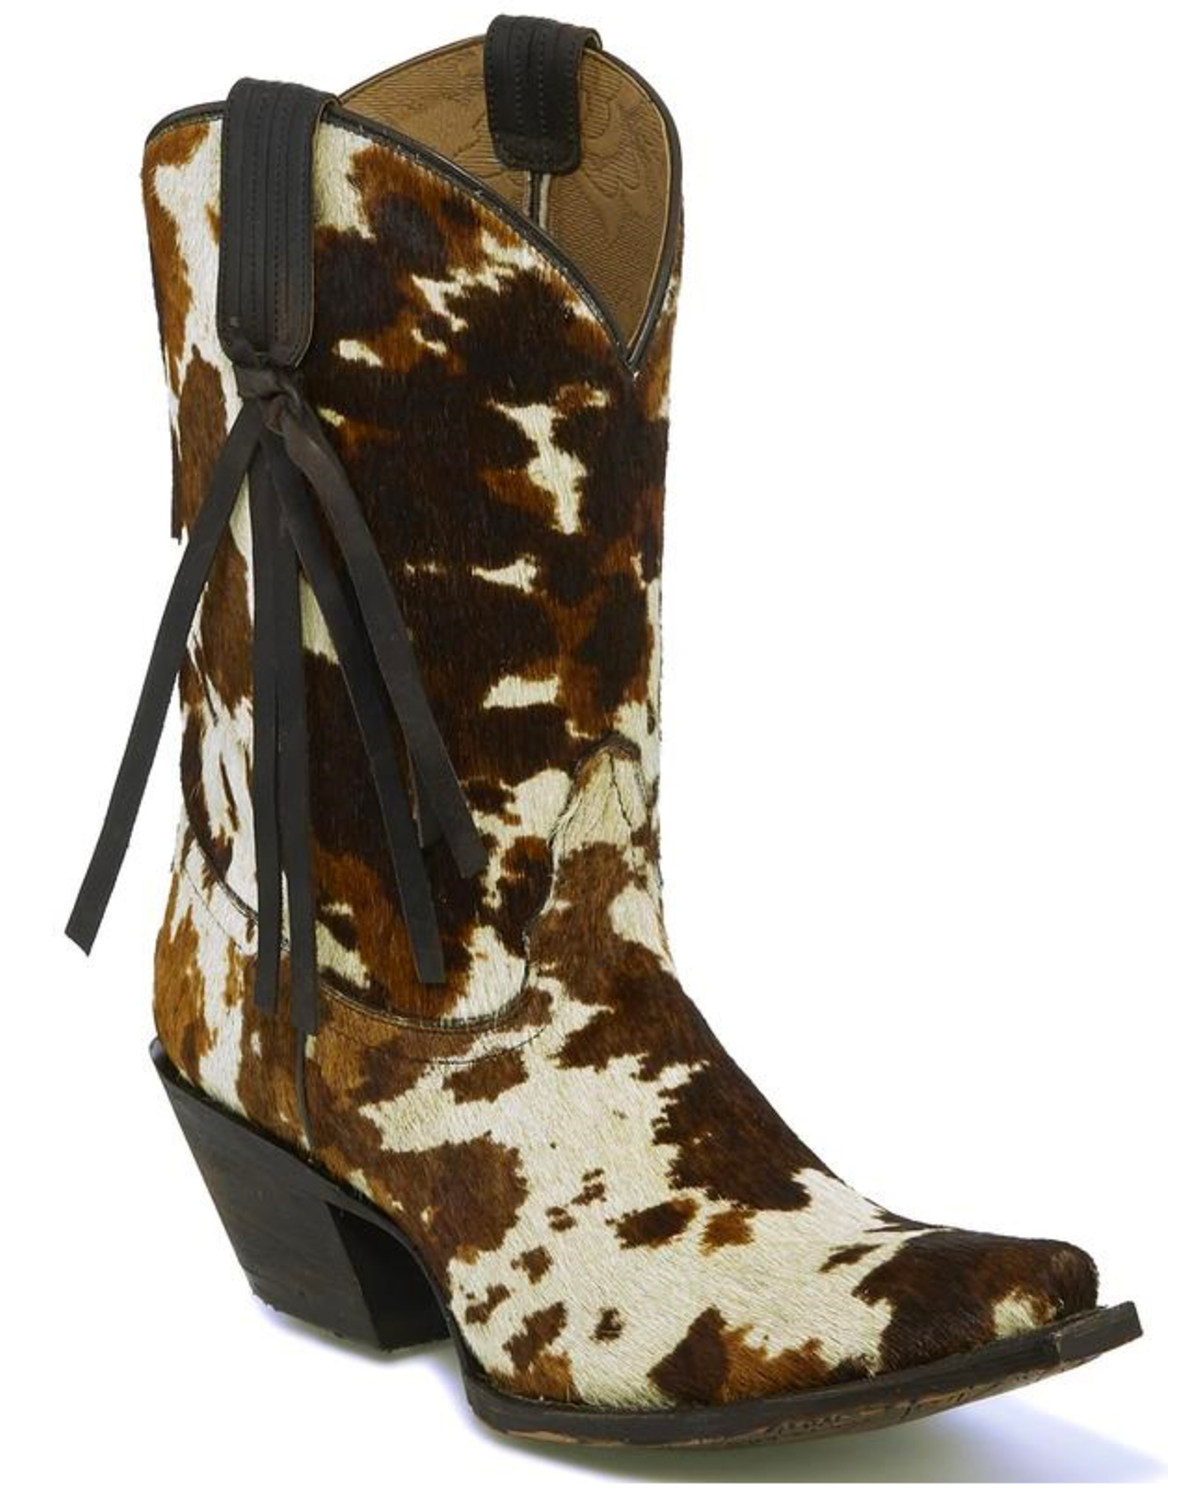 6edf7bdcd94 Tony Lama Women s Tri-Color Hair On Calf Cowgirl Boots - Snip Toe ...